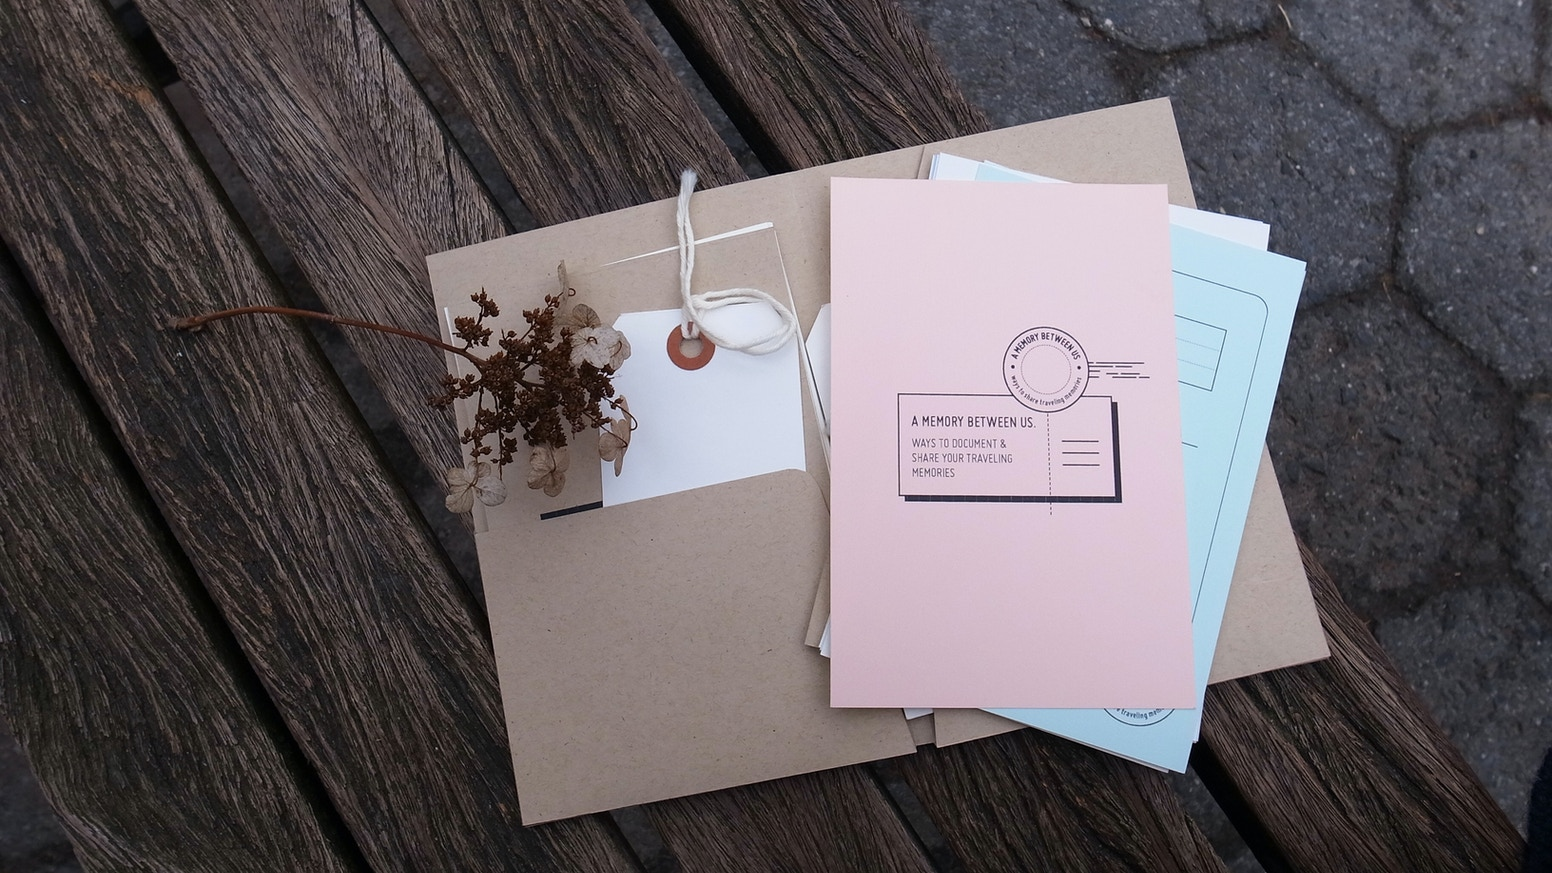 This postcard kit allows traveling companions to document their journey together and to share it with their loved ones.